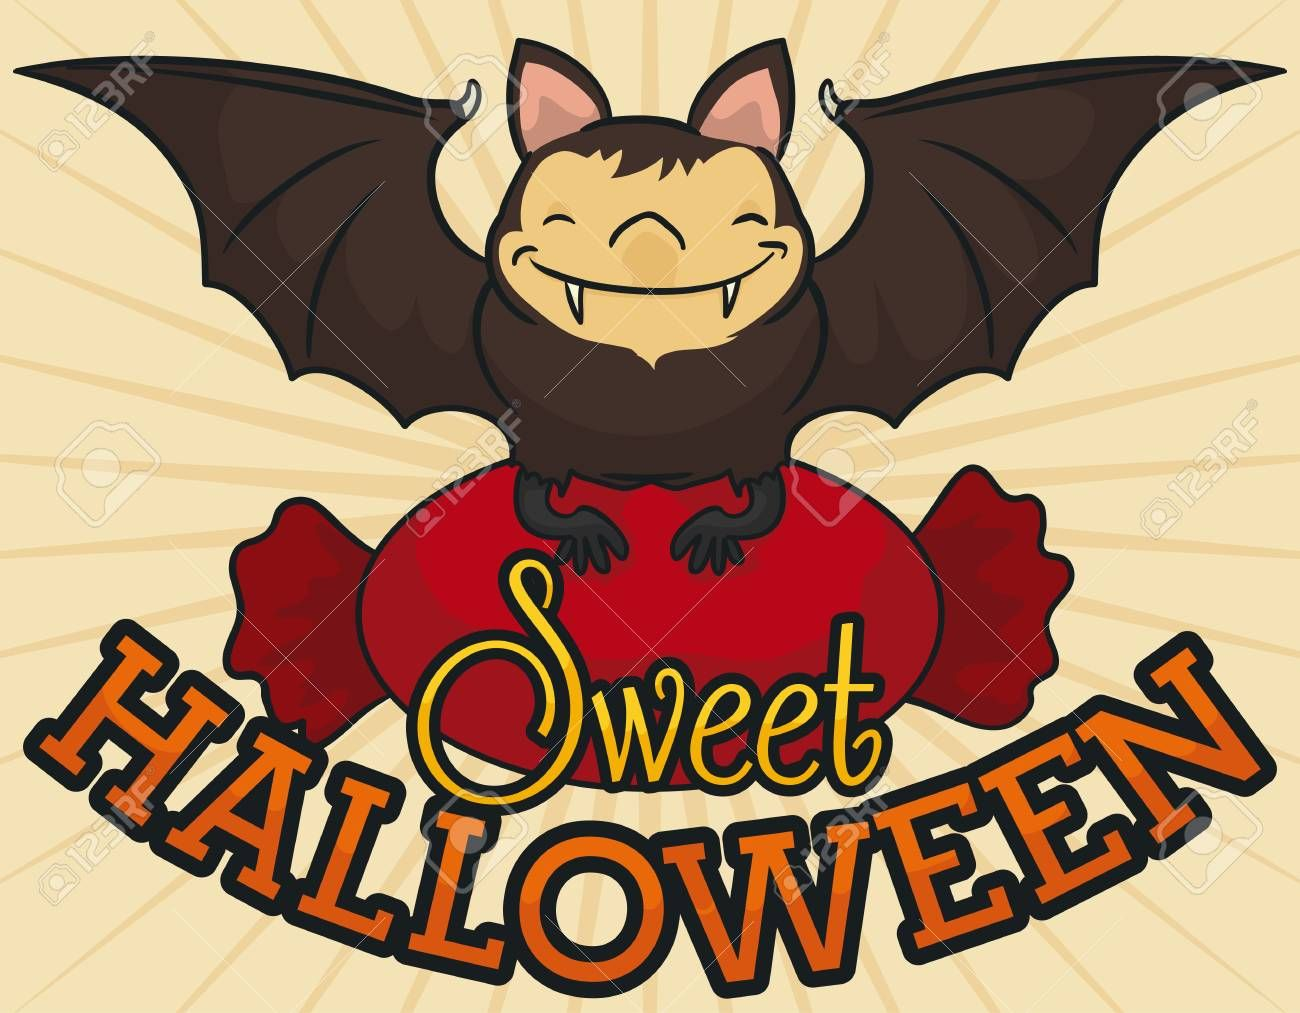 Poster with smiling bat holding a giant wrapped hard candy